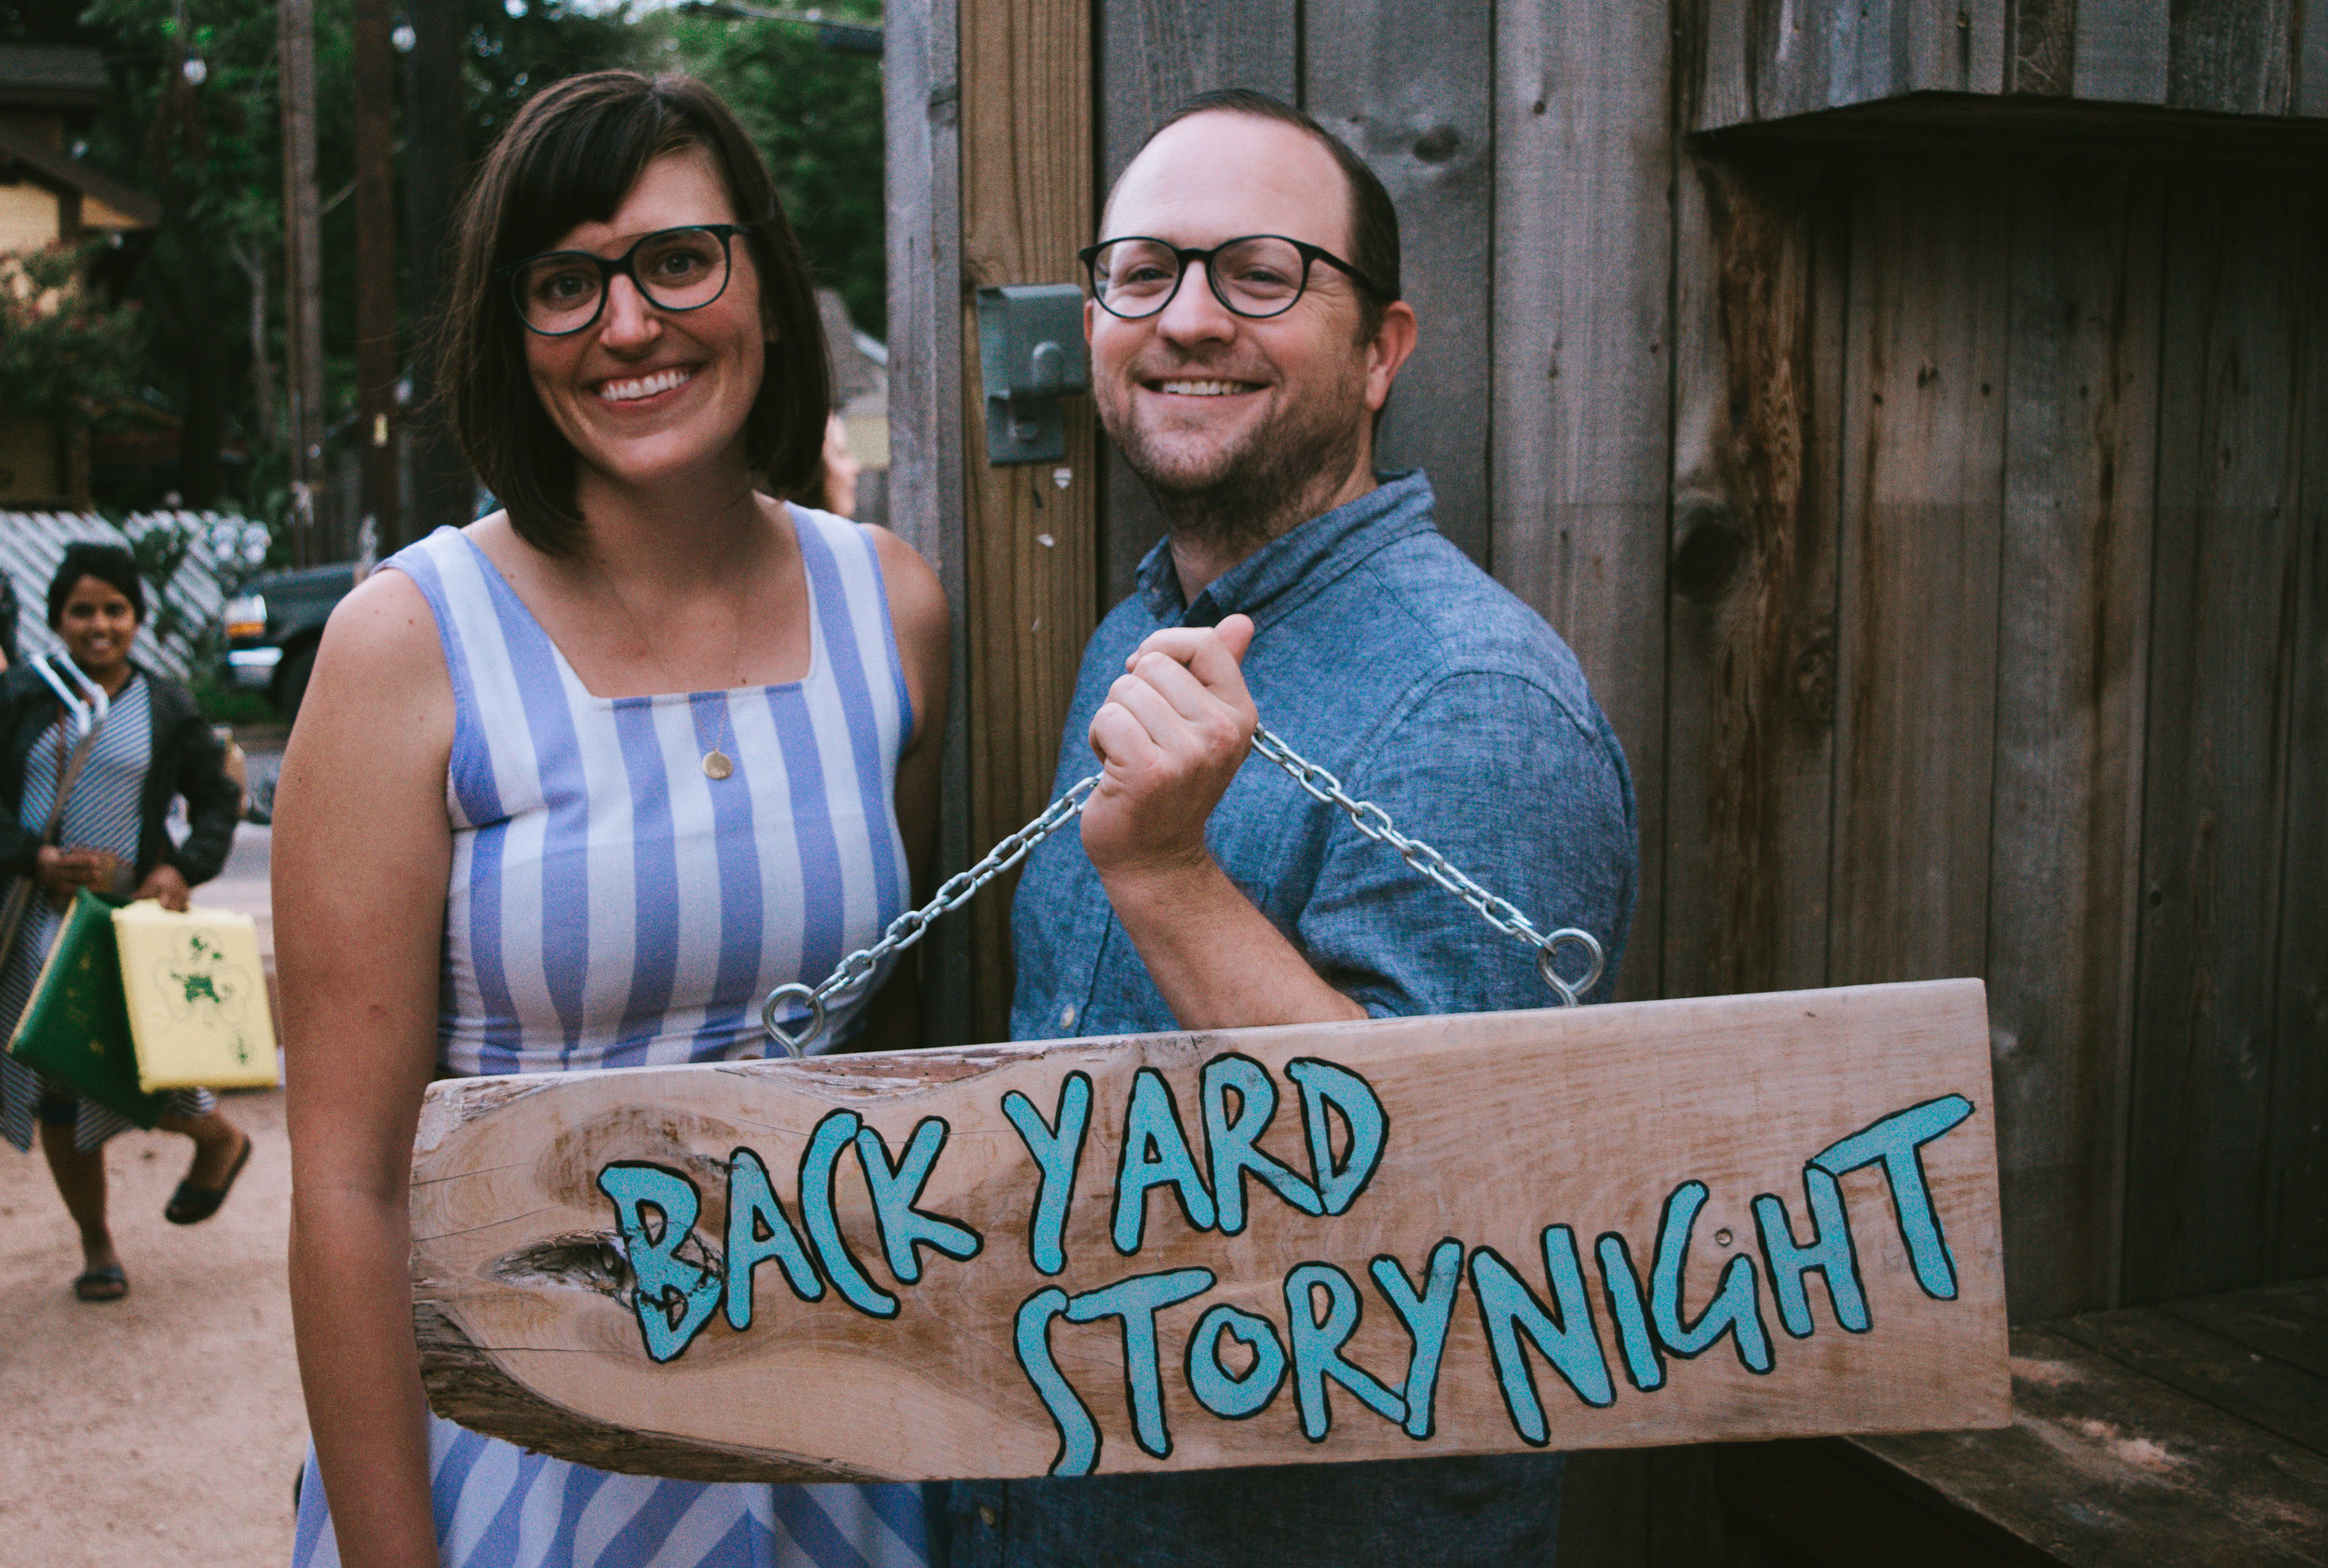 Backyard Story Night: Alter Ego took place on Aug. 28 at the Historic Scoot Inn in East Austin.